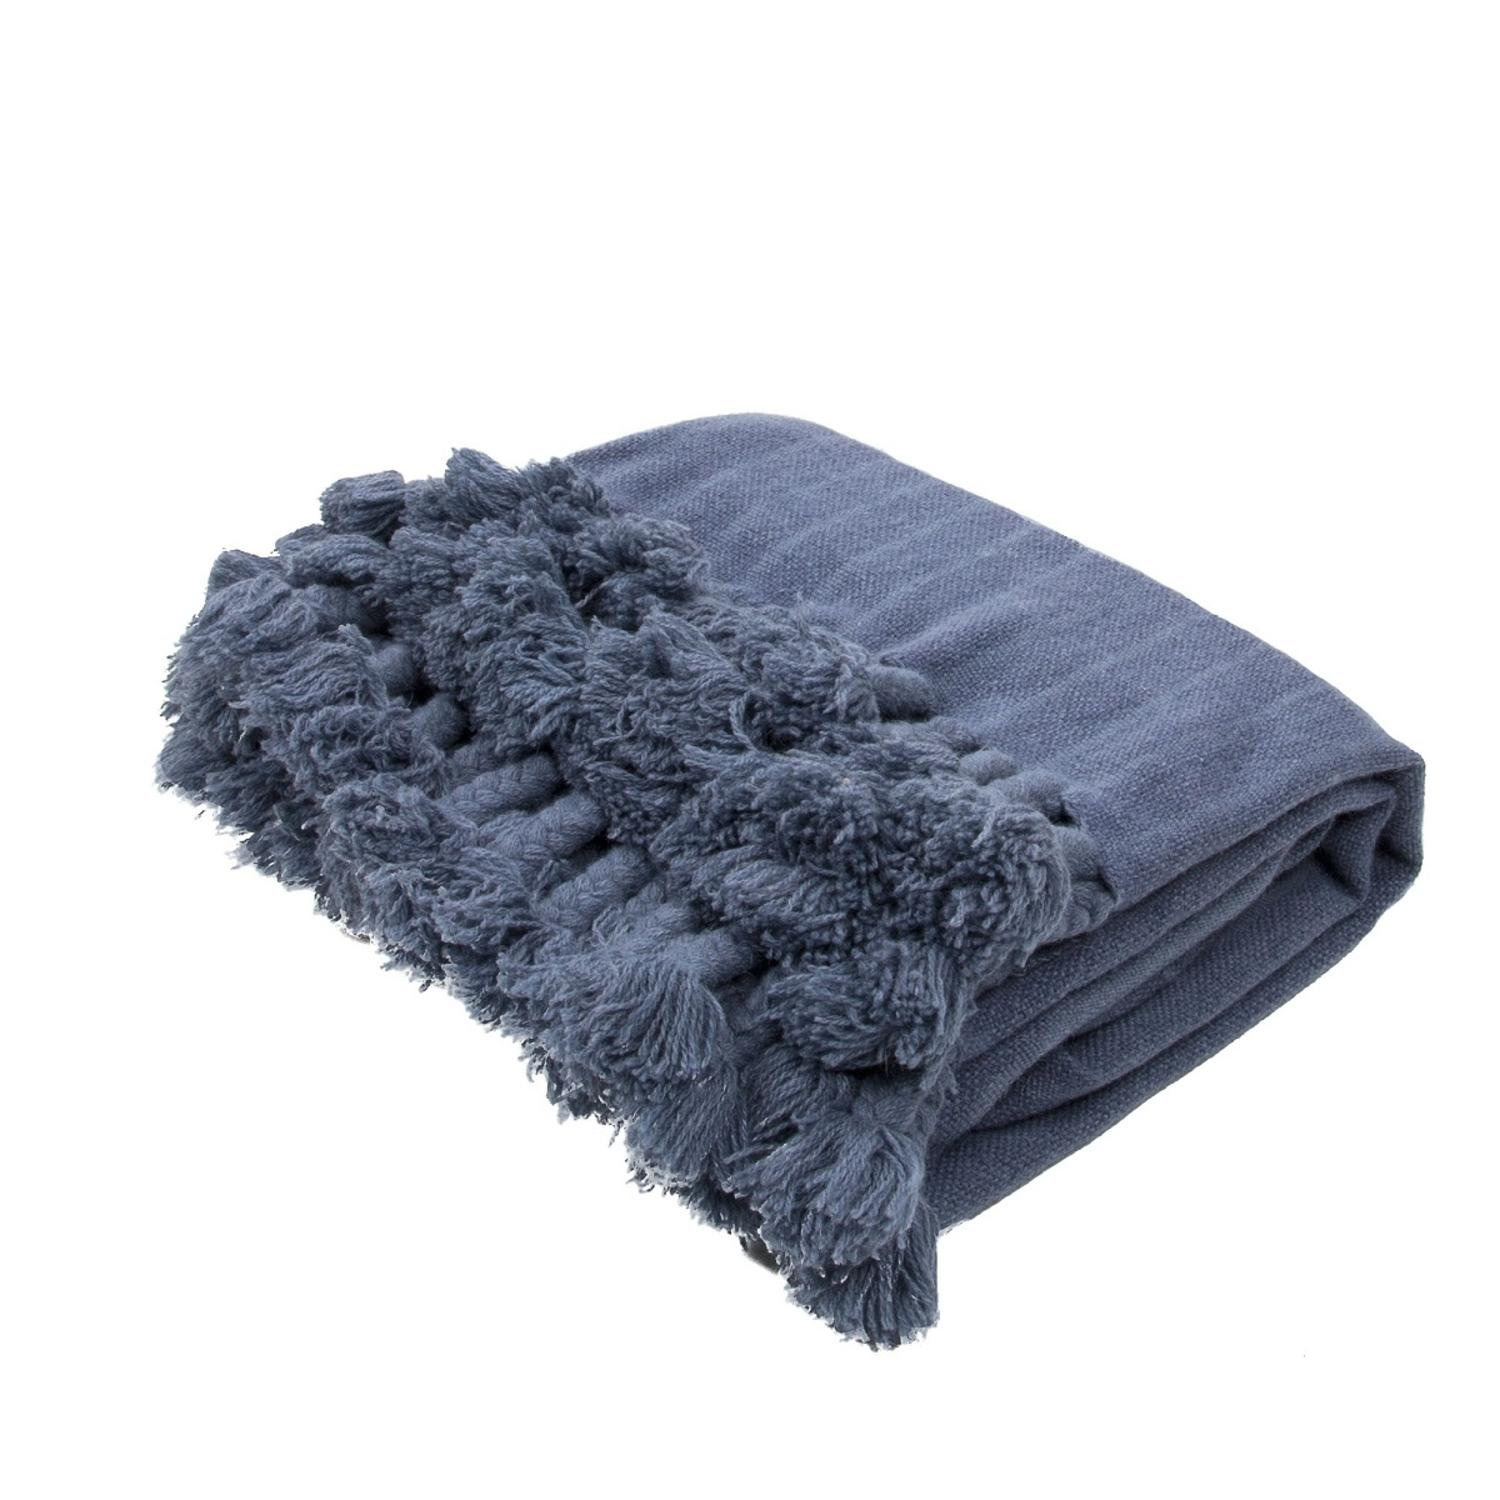 "Slate Blue Braided Tasseled Wool Throw Blanket 50"" x 60"""